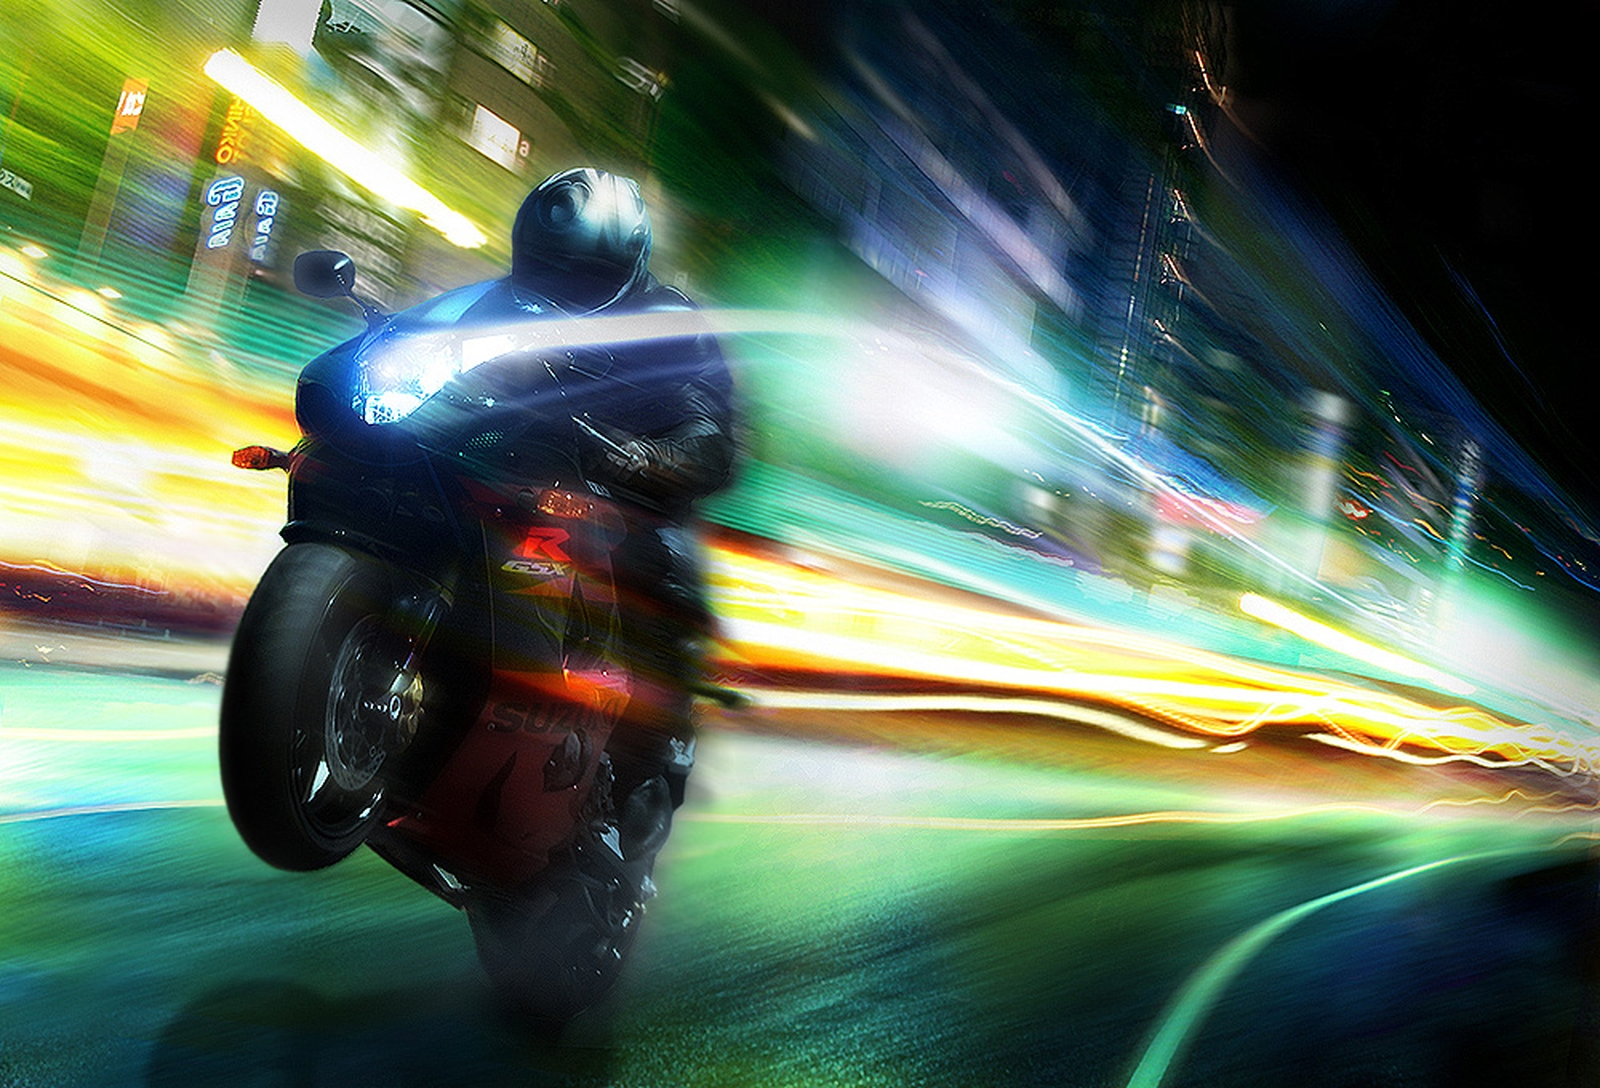 Fond Ecran Moto Gsxr Roue Levee 10 000 Fonds D Ecran Hd Gratuits Et De Qualite Wallpapers Hd